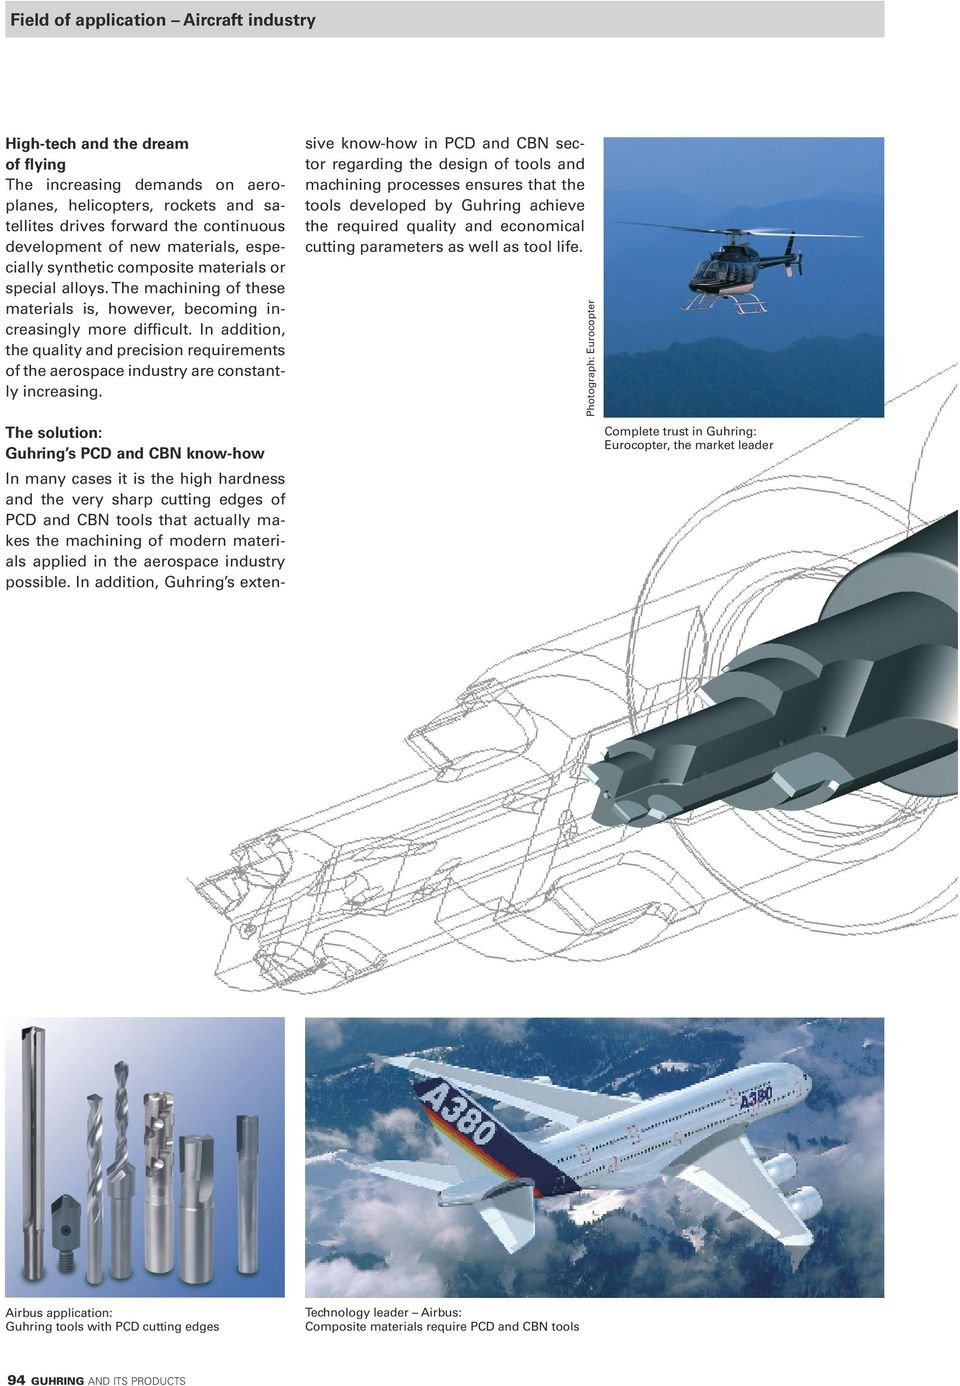 In addition, the quality and precision requirements of the aerospace industry are constantly increasing.